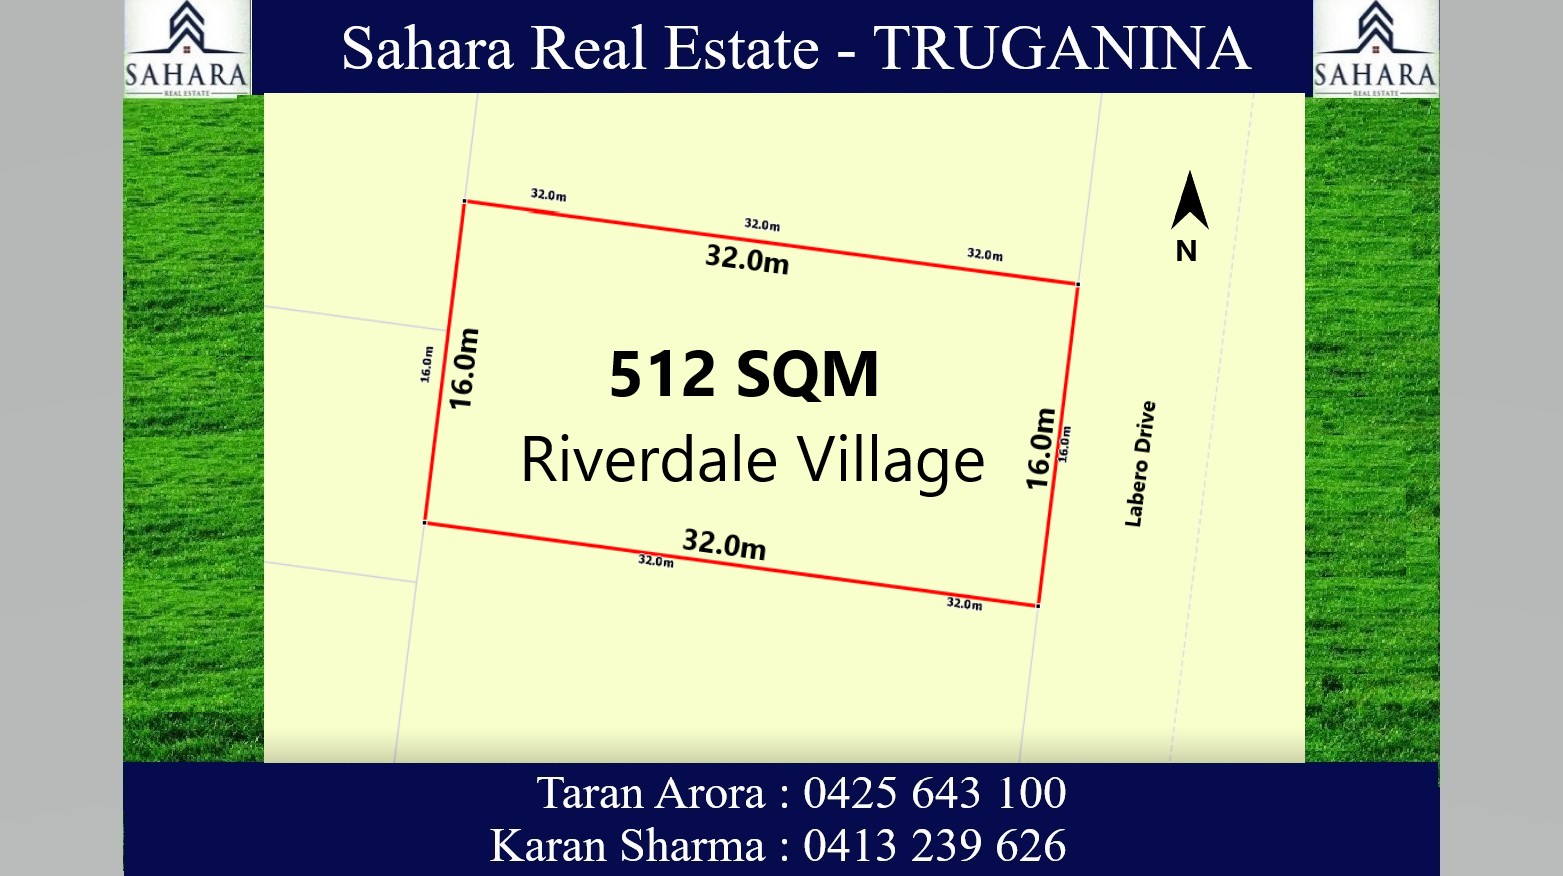 512 sqm East Facing in Riverdale Village